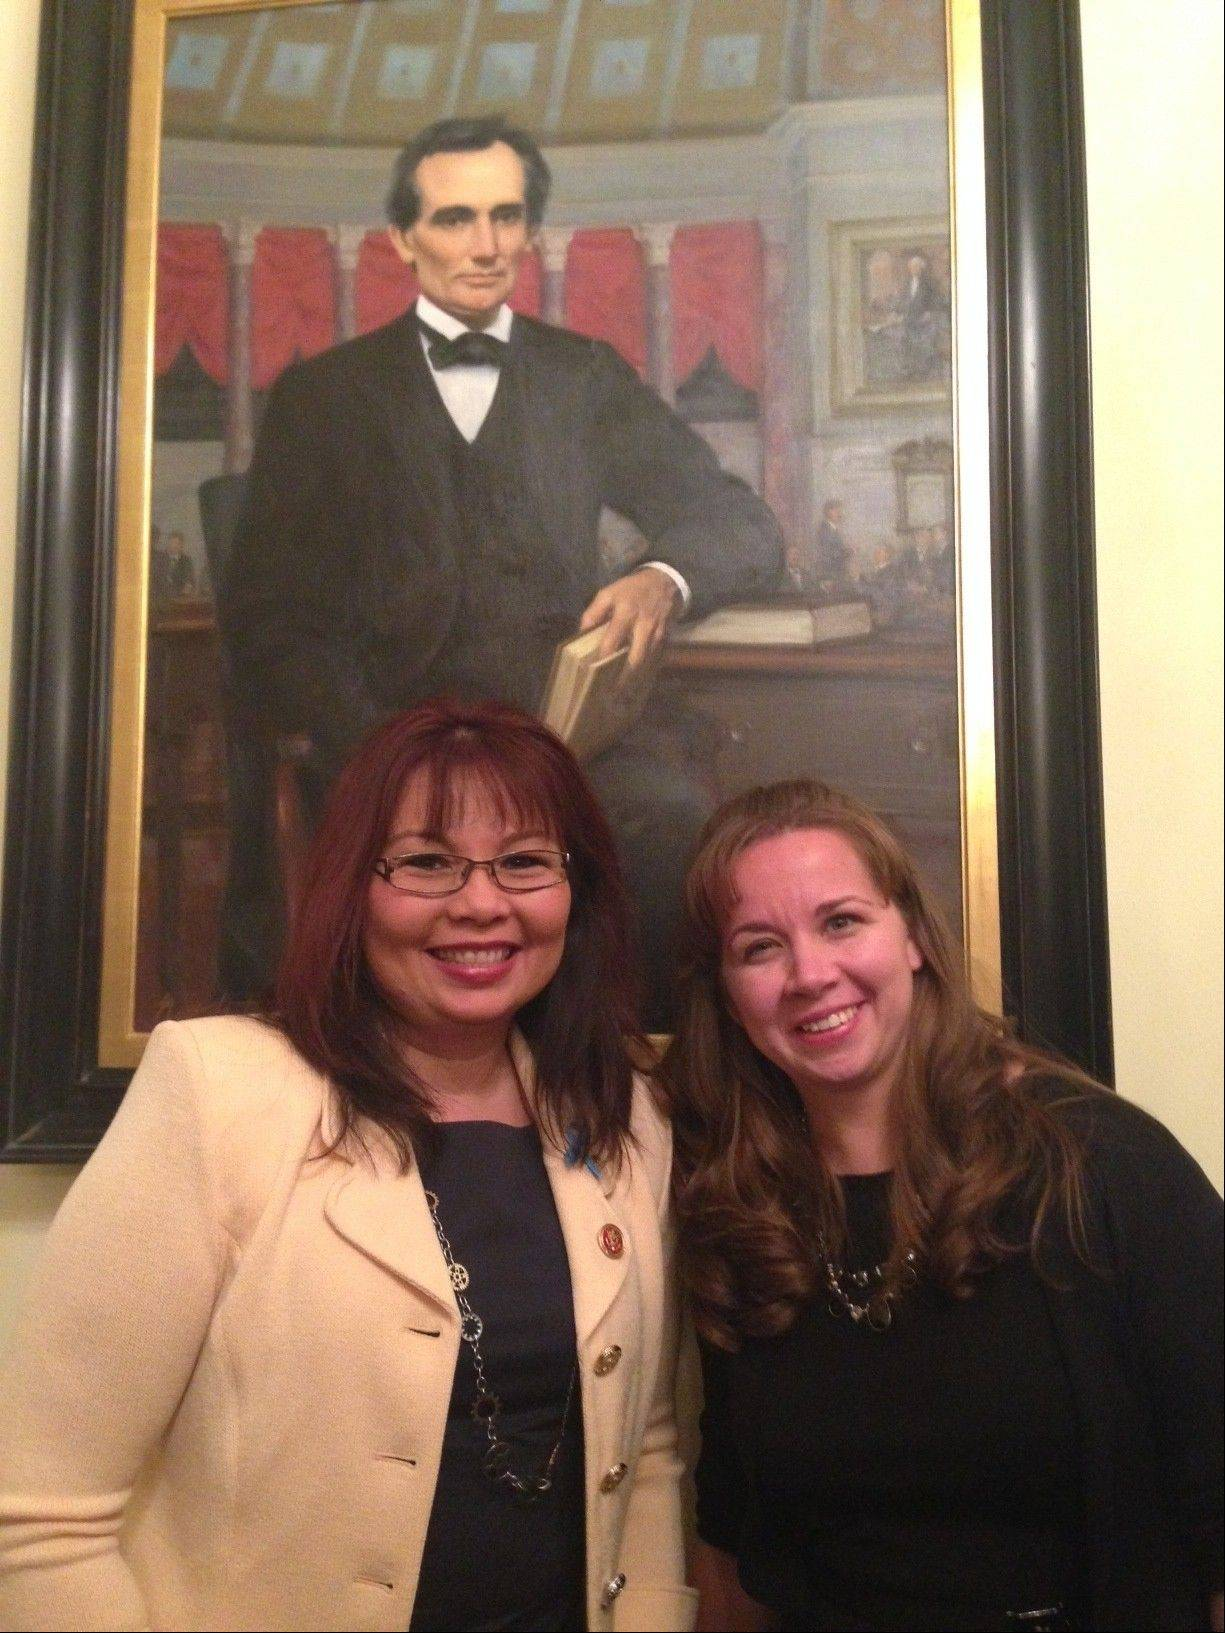 Schaumburg Township Elementary District 54 science teacher Michelle Burke, right, was a guest of 8th District Congresswoman Tammy Duckworth for the State of the Union in Washington D.C. Tuesday.